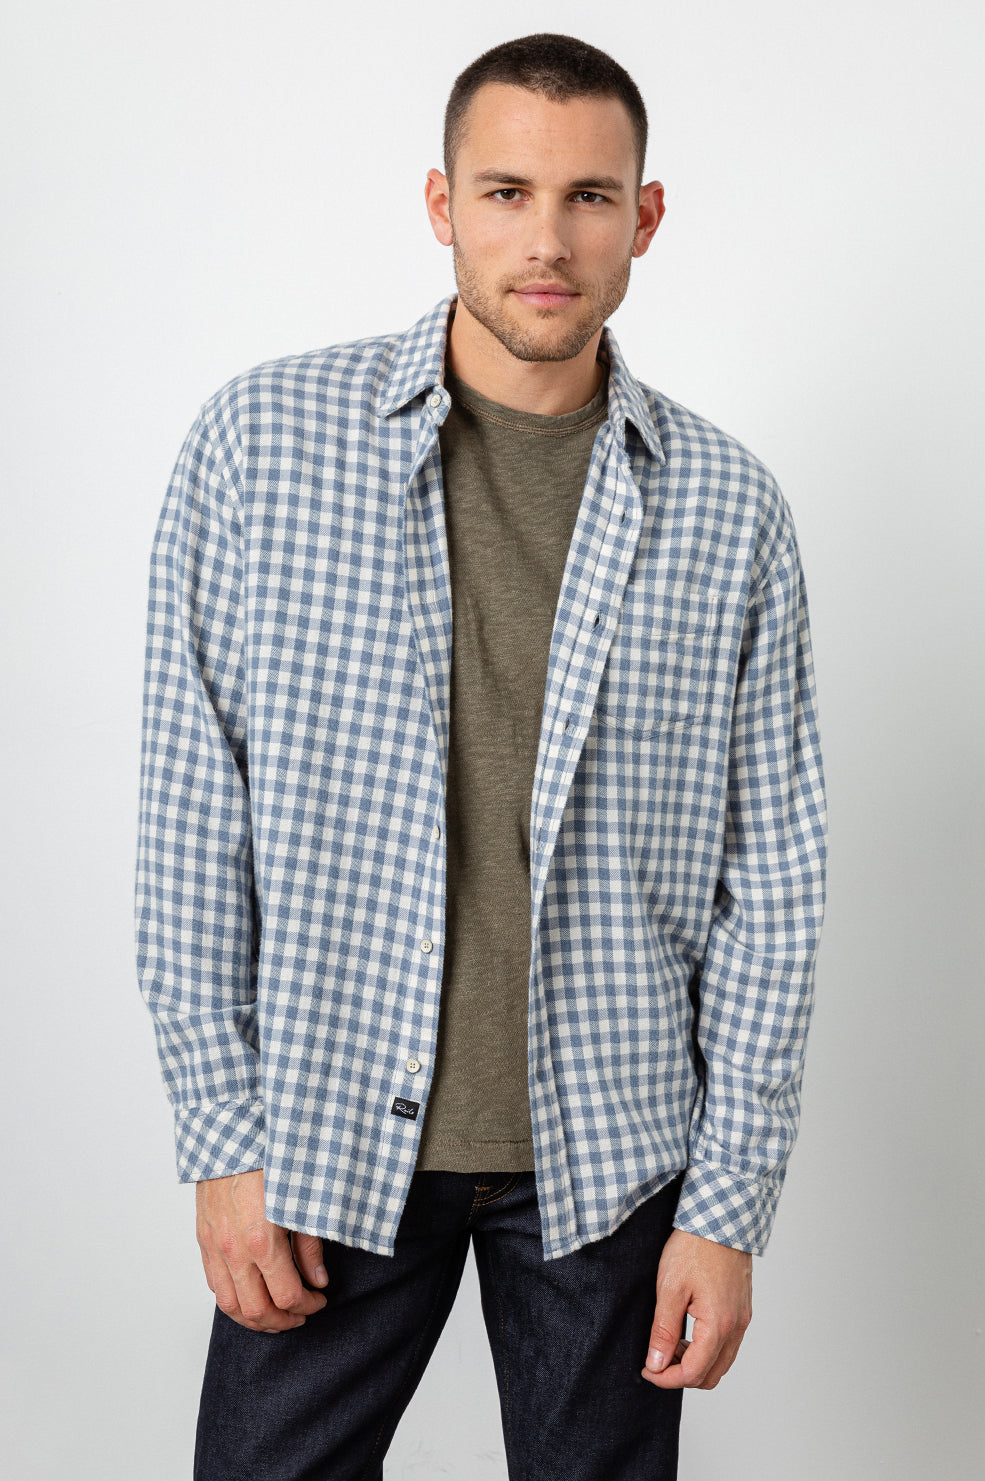 Lennox Long sleeve, button-down, relaxed fit shirt with single chest pocket in washed blue and cream check - side